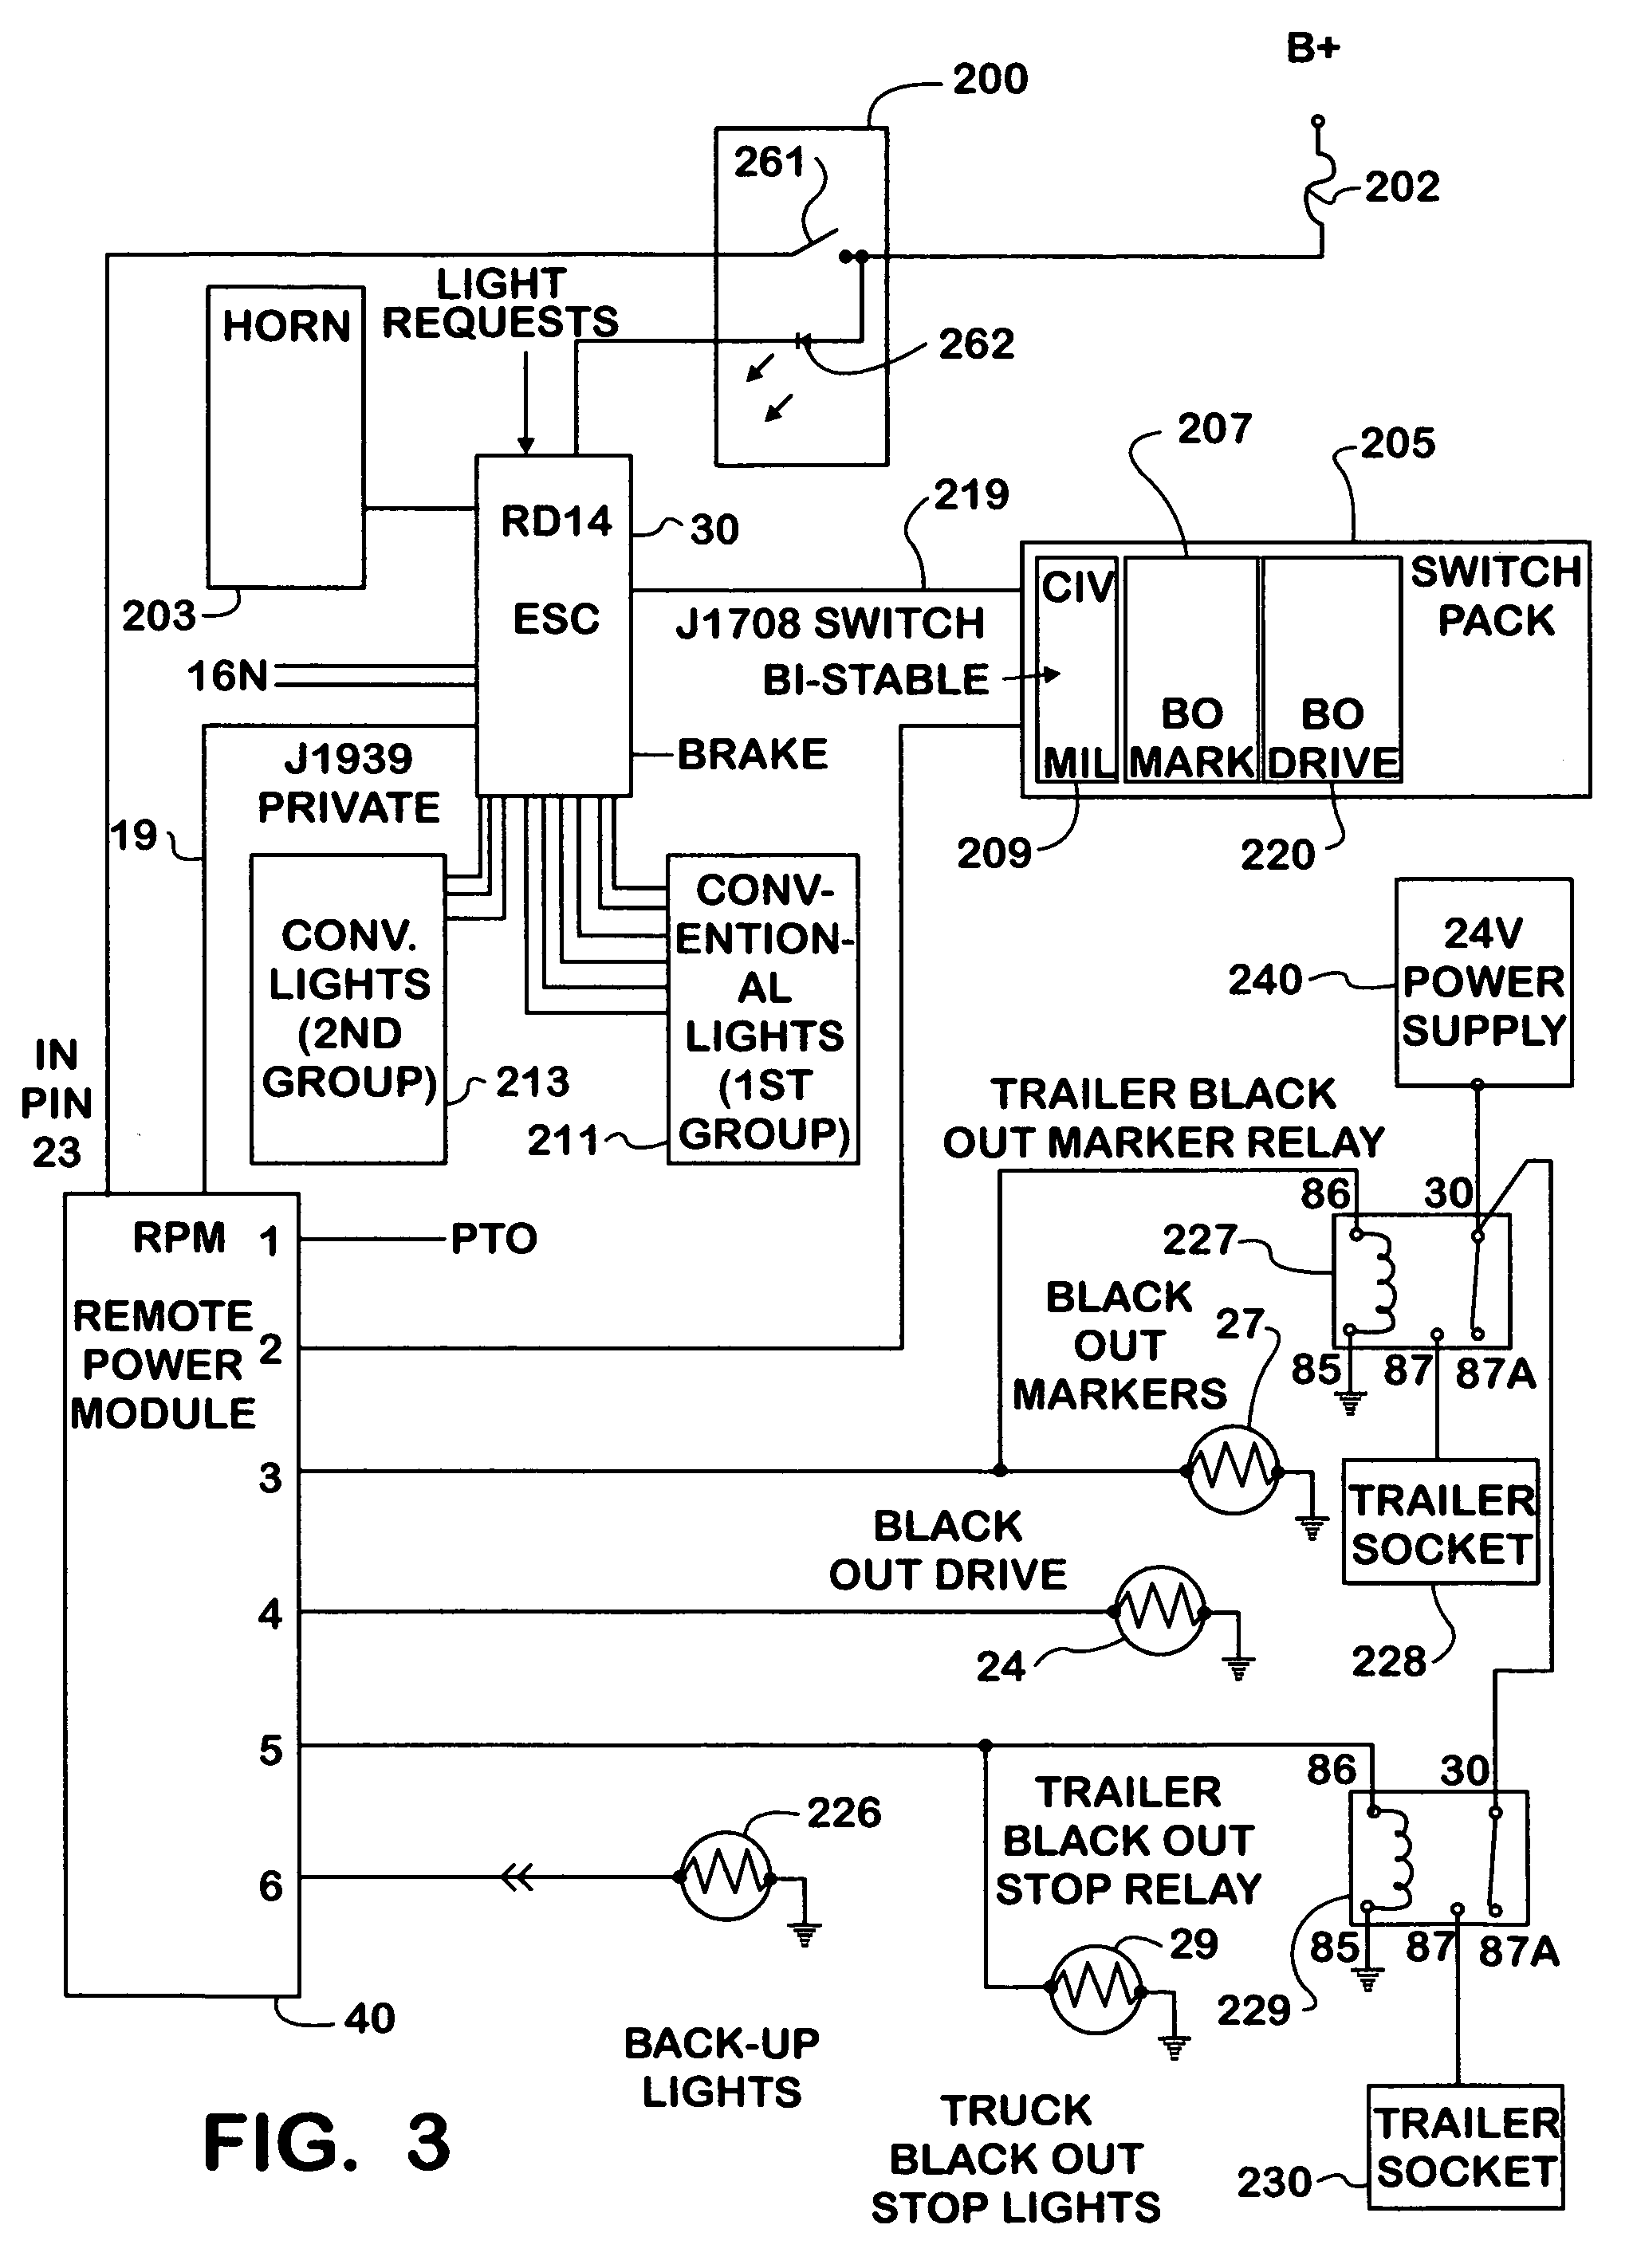 Us7355347 Auxiliary Lighting System For Vehicles J1939 International 4700 Wiring Diagram Patent Drawing